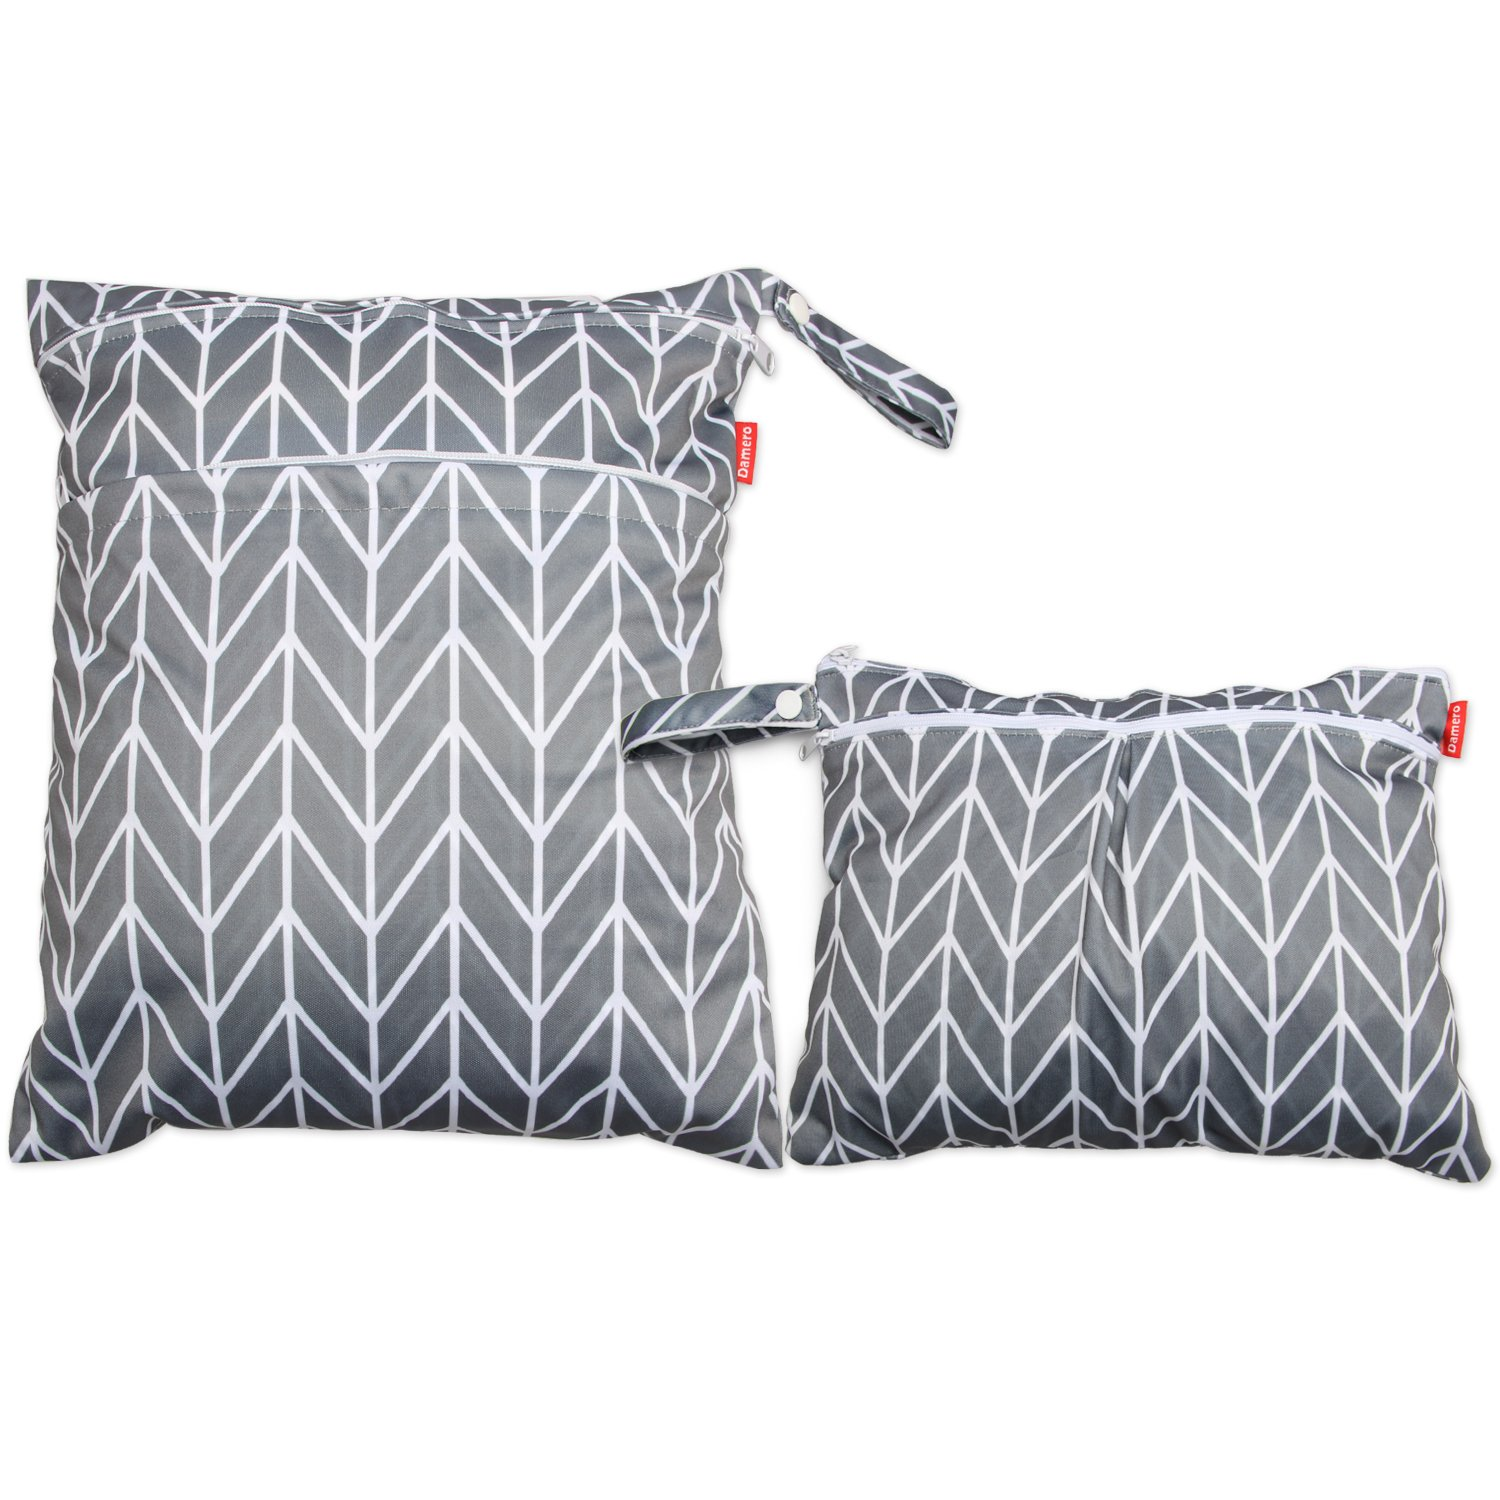 Damero 2pcs Travel Wet and Dry Bag with Handle for Cloth Diaper, Pumping Parts, Clothes, Swimsuit and More, Easy to Grab and Go, Gray Arrows